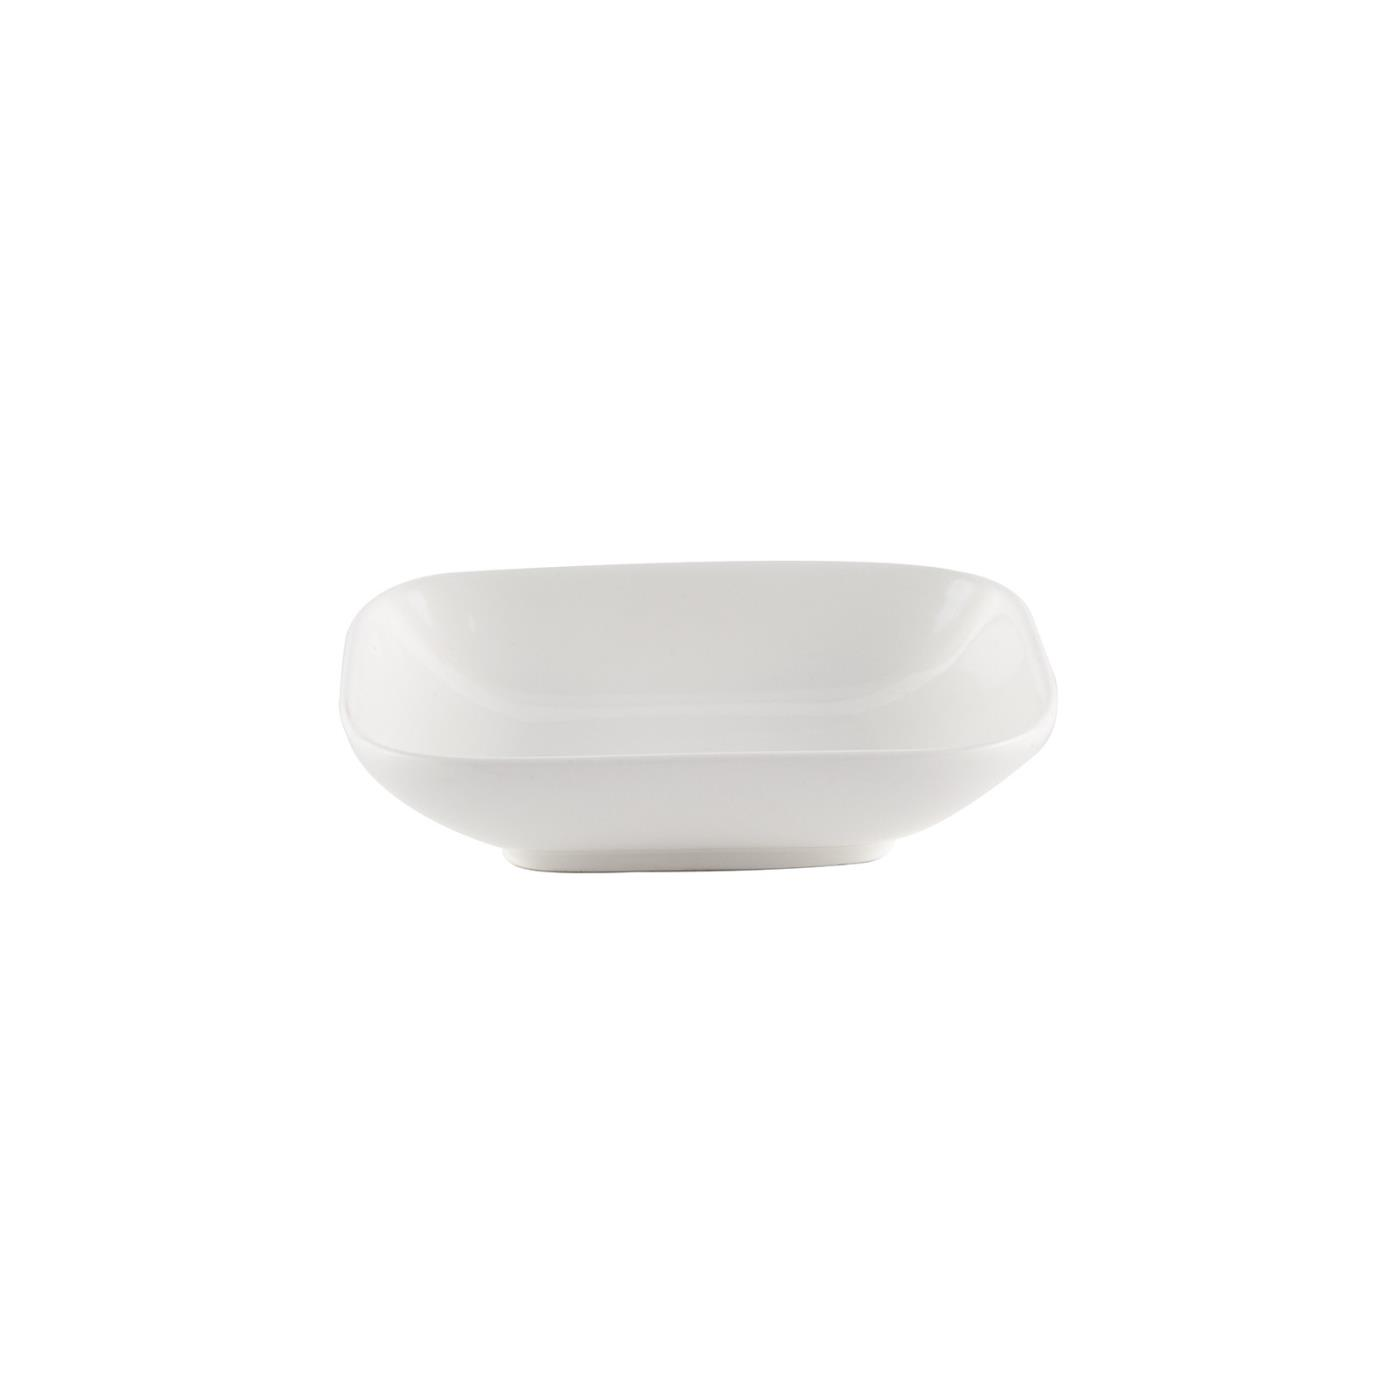 "White Ceramic Square Bowl - 5"" Rounded Corners"